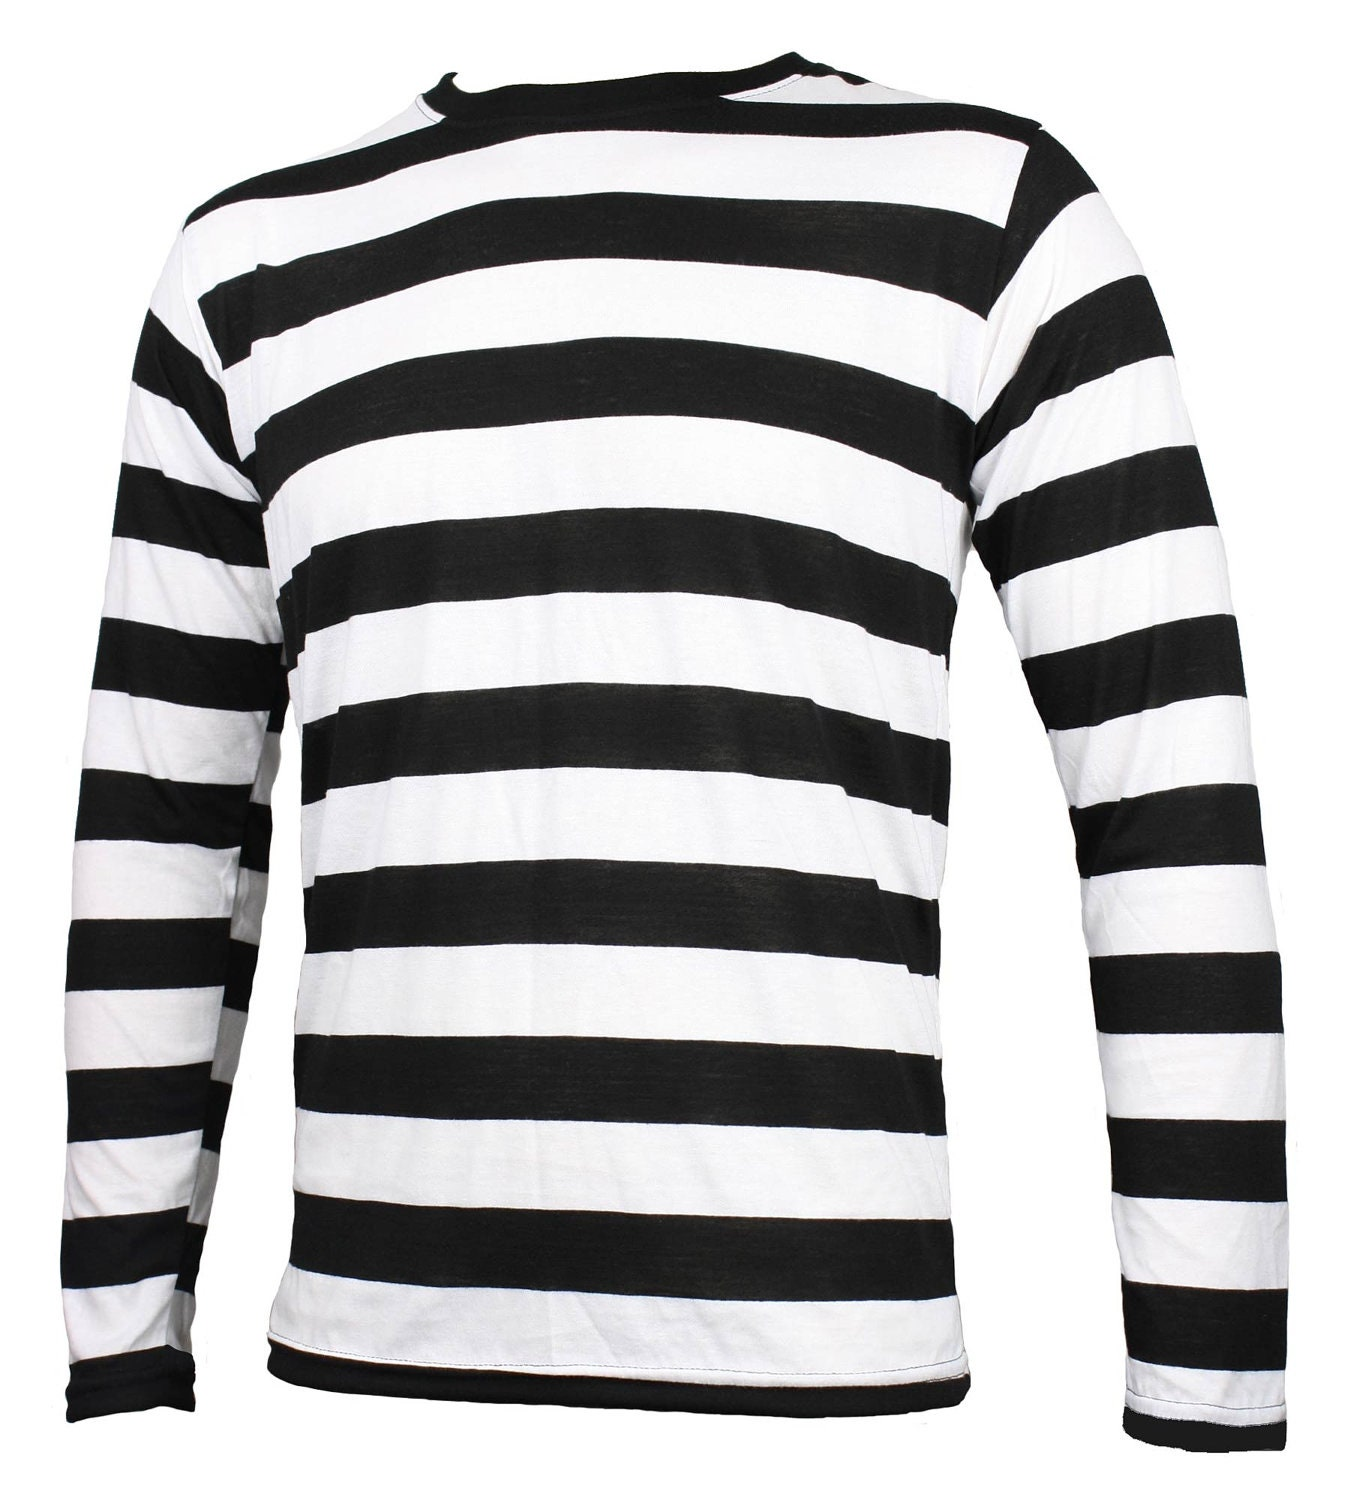 Men 39 s long sleeve black white striped shirt by skirtstar for Black and white striped long sleeve shirt women